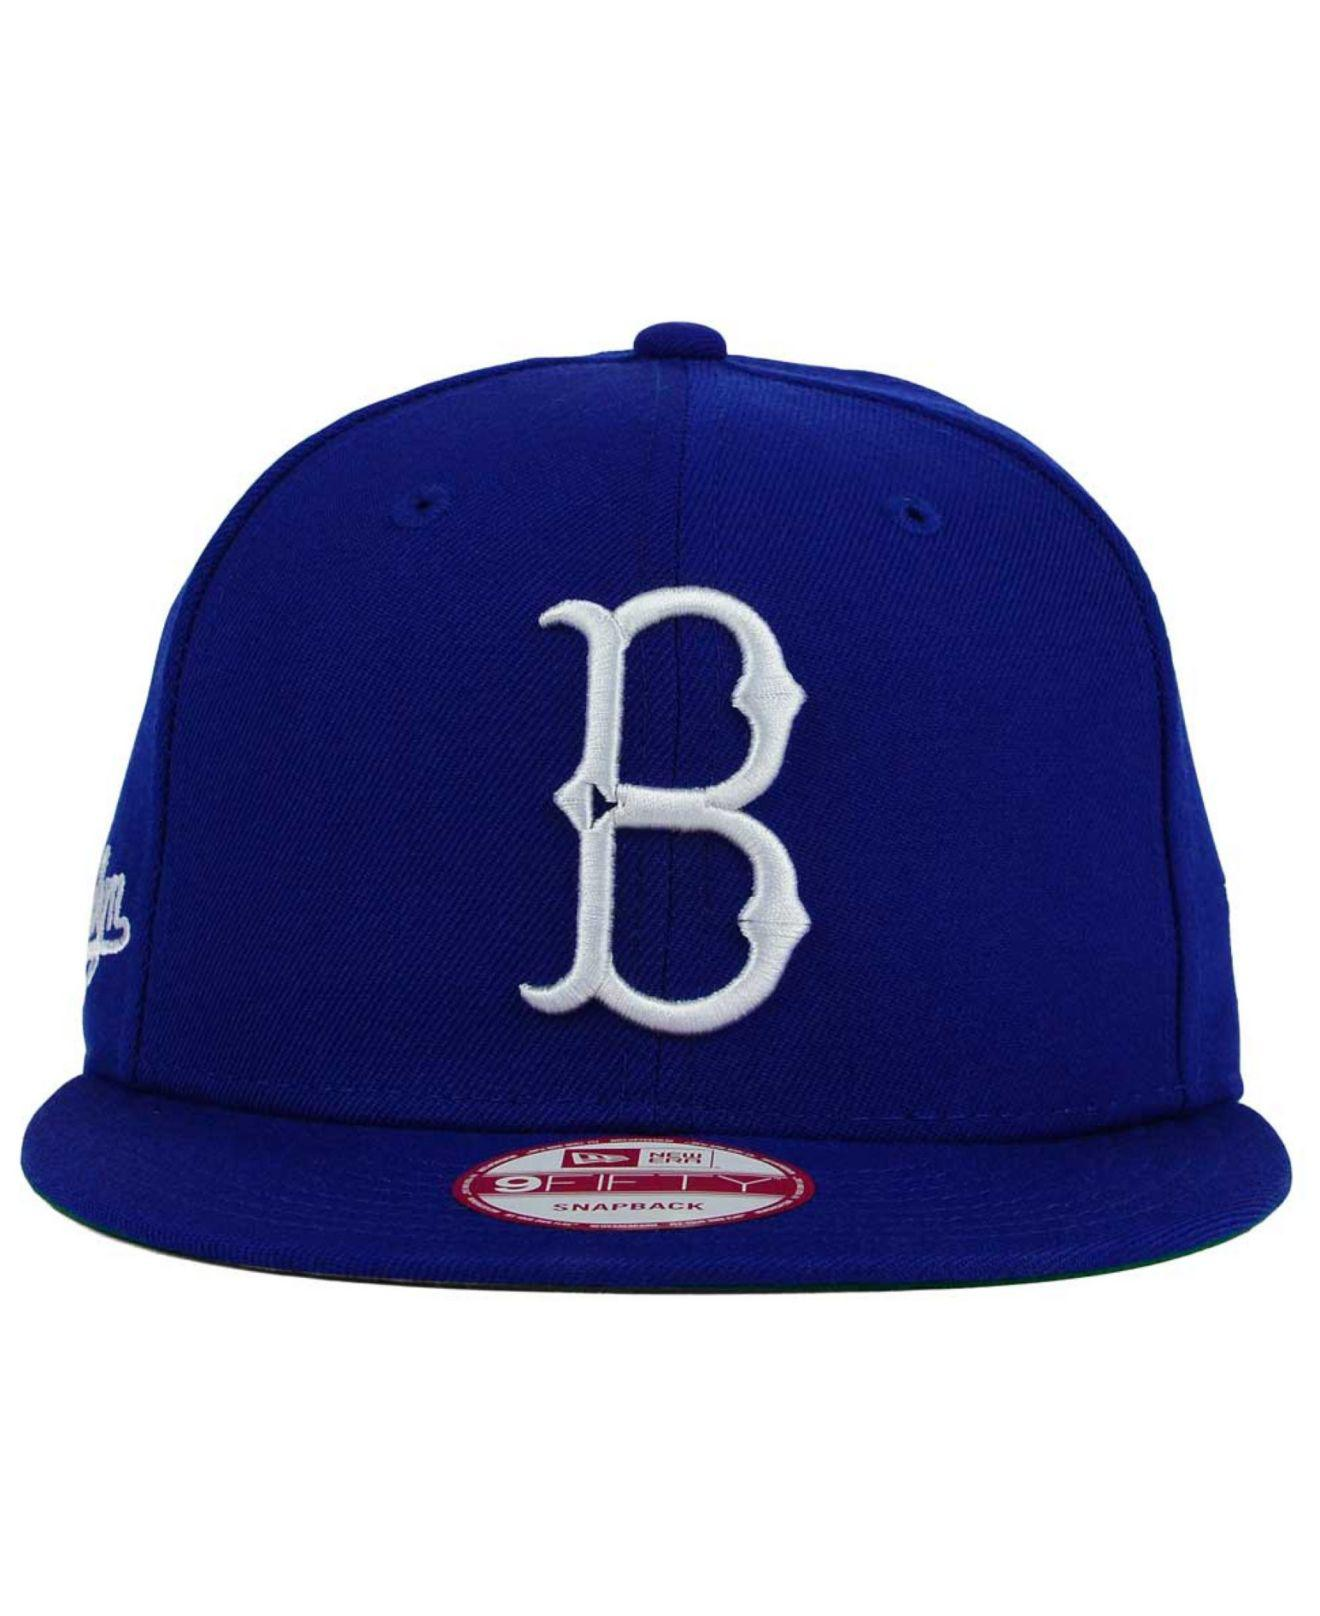 on sale 108b1 b2645 Lyst - KTZ Brooklyn Dodgers 2 Tone Link Cooperstown 9fifty Snapback Cap in  Blue for Men